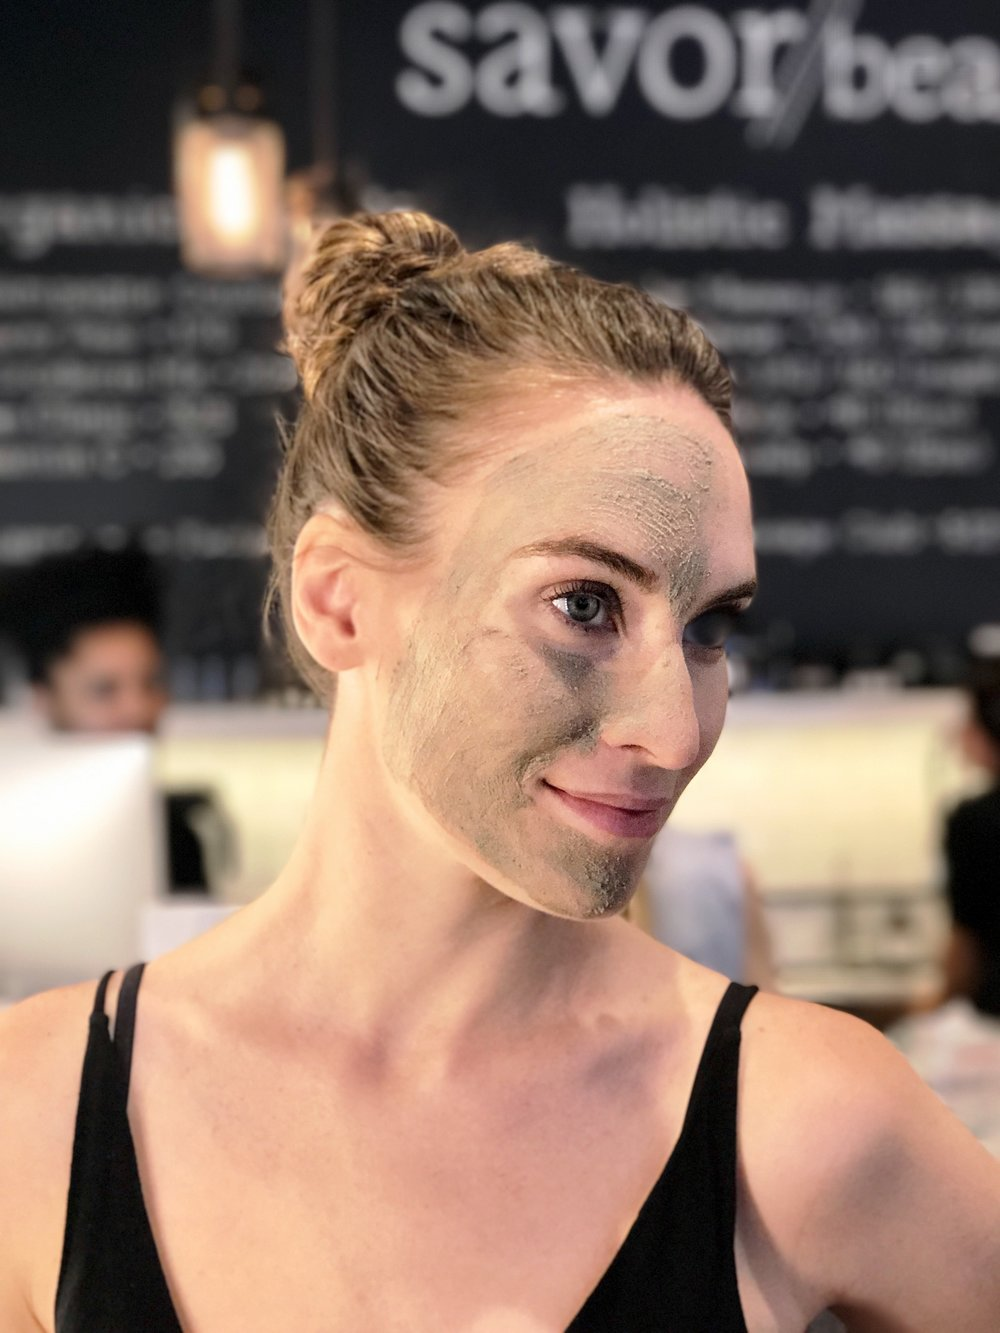 Erin helped formulate #facecakemask